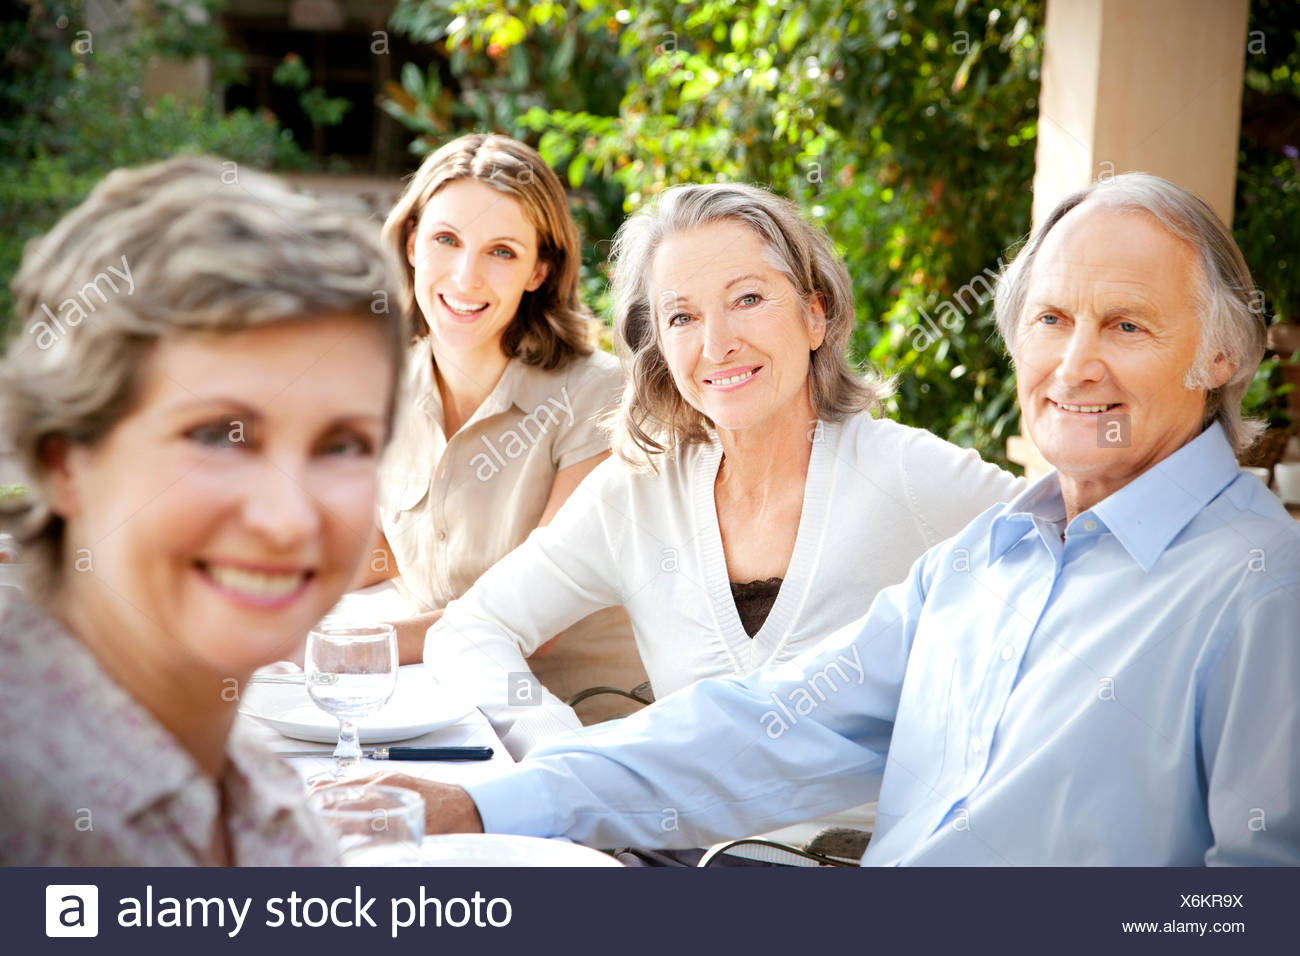 Four smiling friends sitting at laid table in the garden - Stock Image